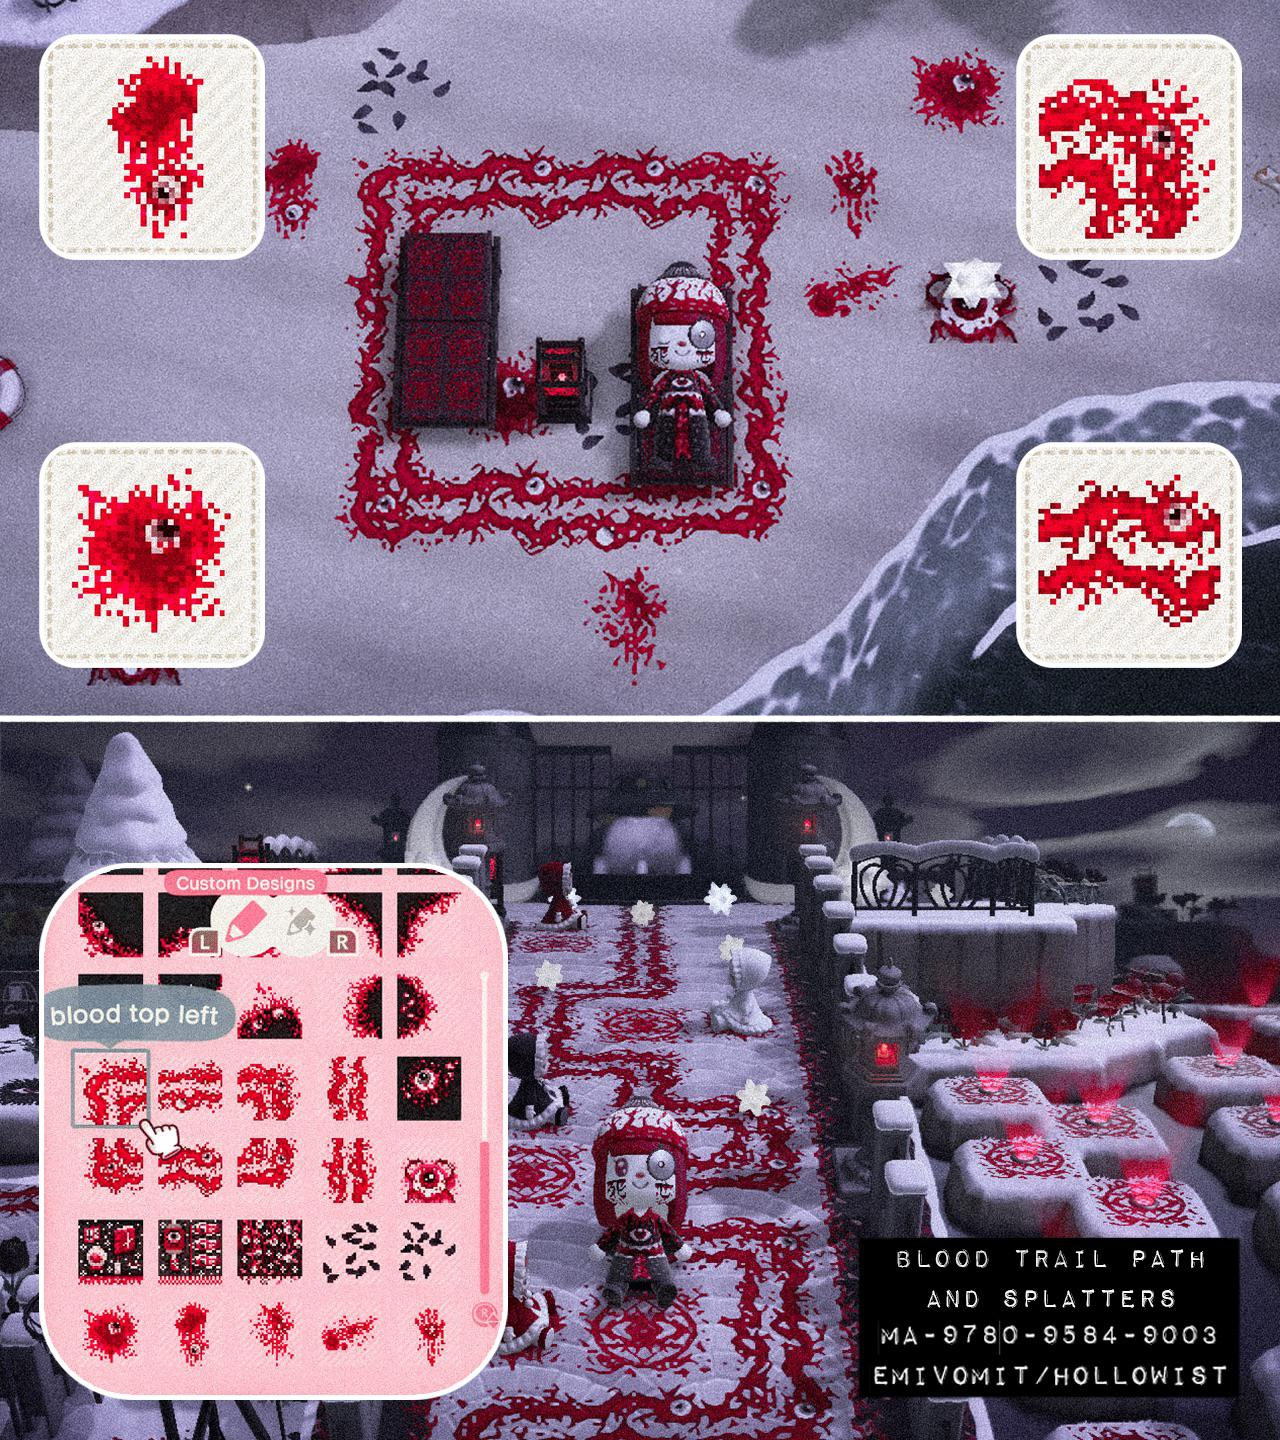 👁️🖤 BLOOD TRAIL PATH + SPLATTERS 💉🩸 there are variations and accompanying blood splatters for you to choose from 🕸️ MA-9780-9584-9003